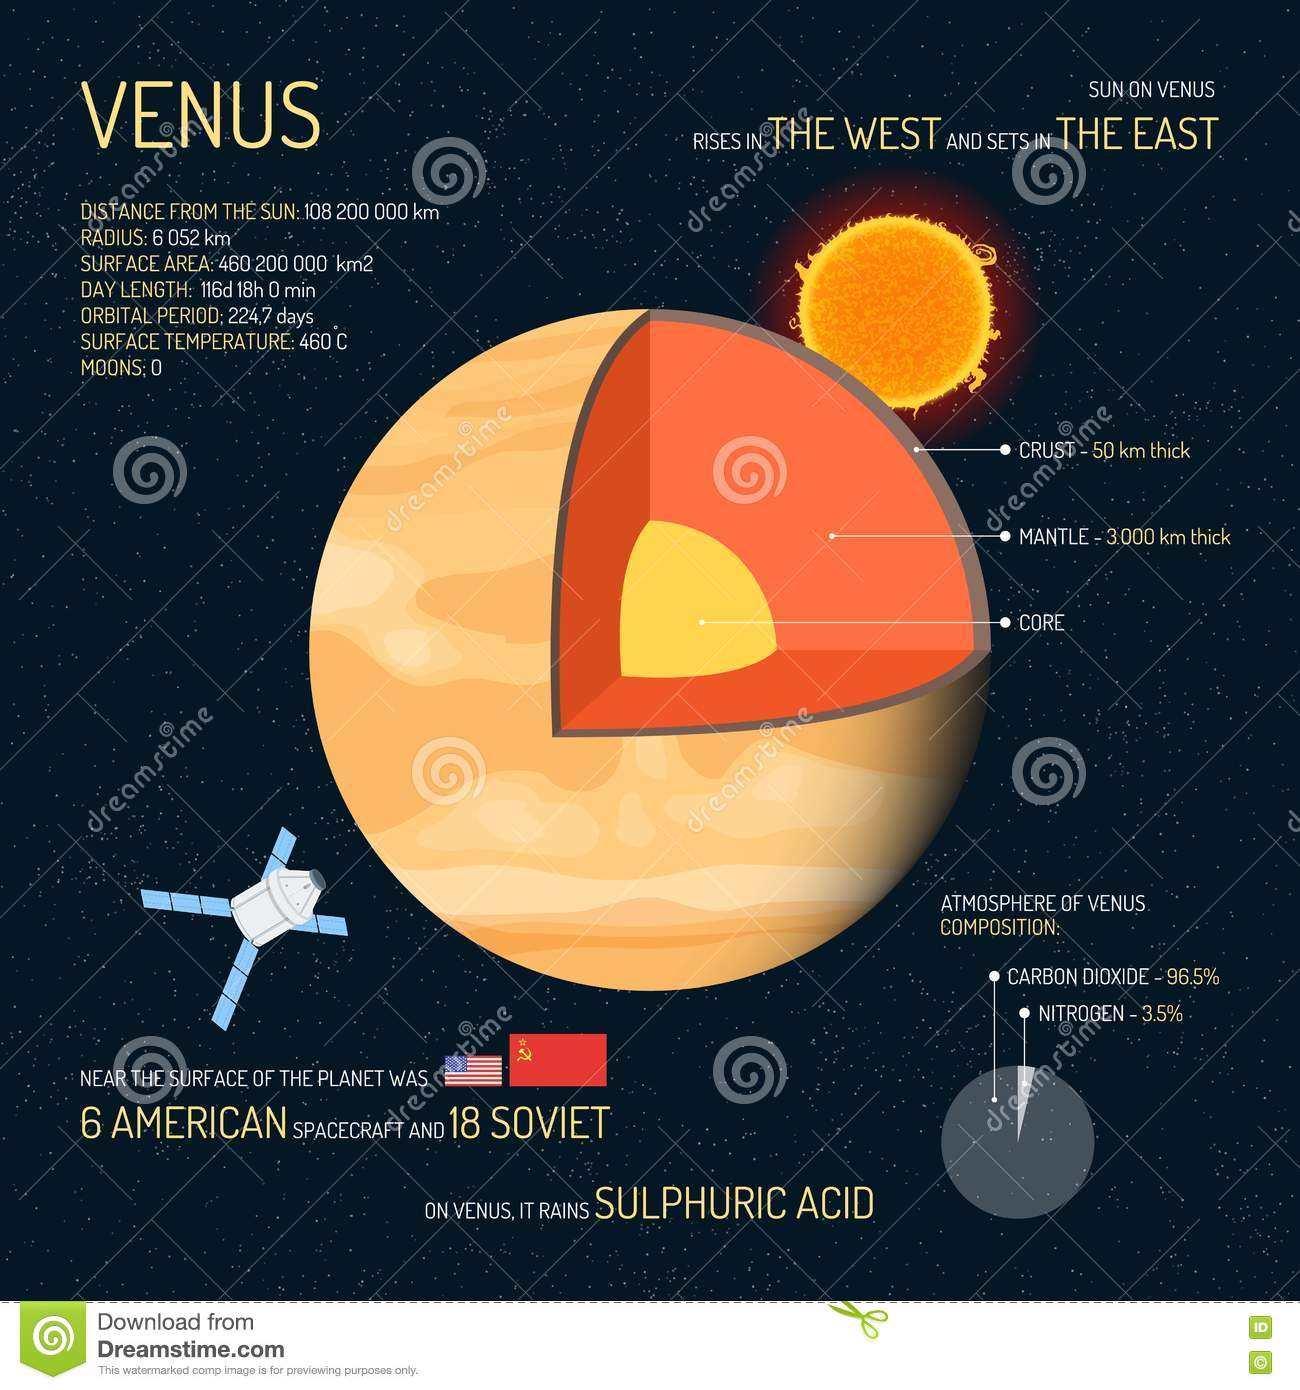 Venus Detailed Structure With Layers Vector Illustration